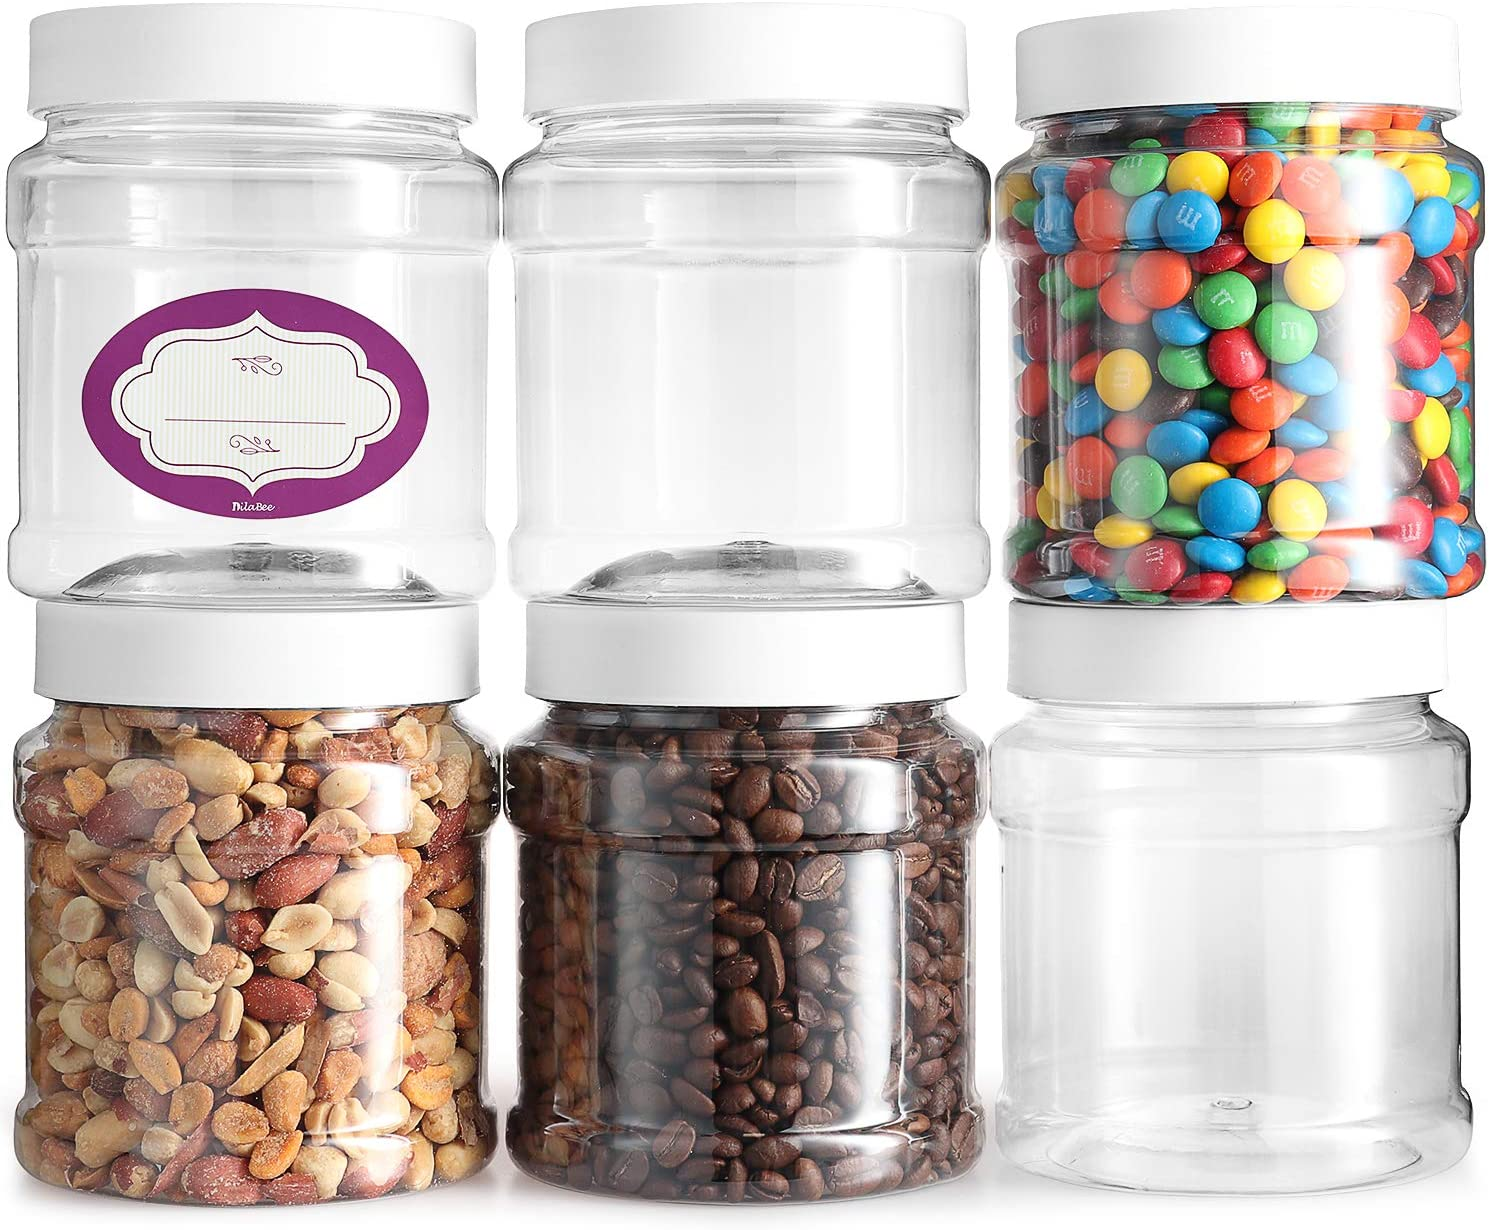 Clear Empty Plastic Storage containers with Lids - Round Pantry Containers - Clear Jars Come with Air Tight Lids and Labels – BPA Free Plastic Jar - Paint Storage Containers (6 Pack 32 Oz)